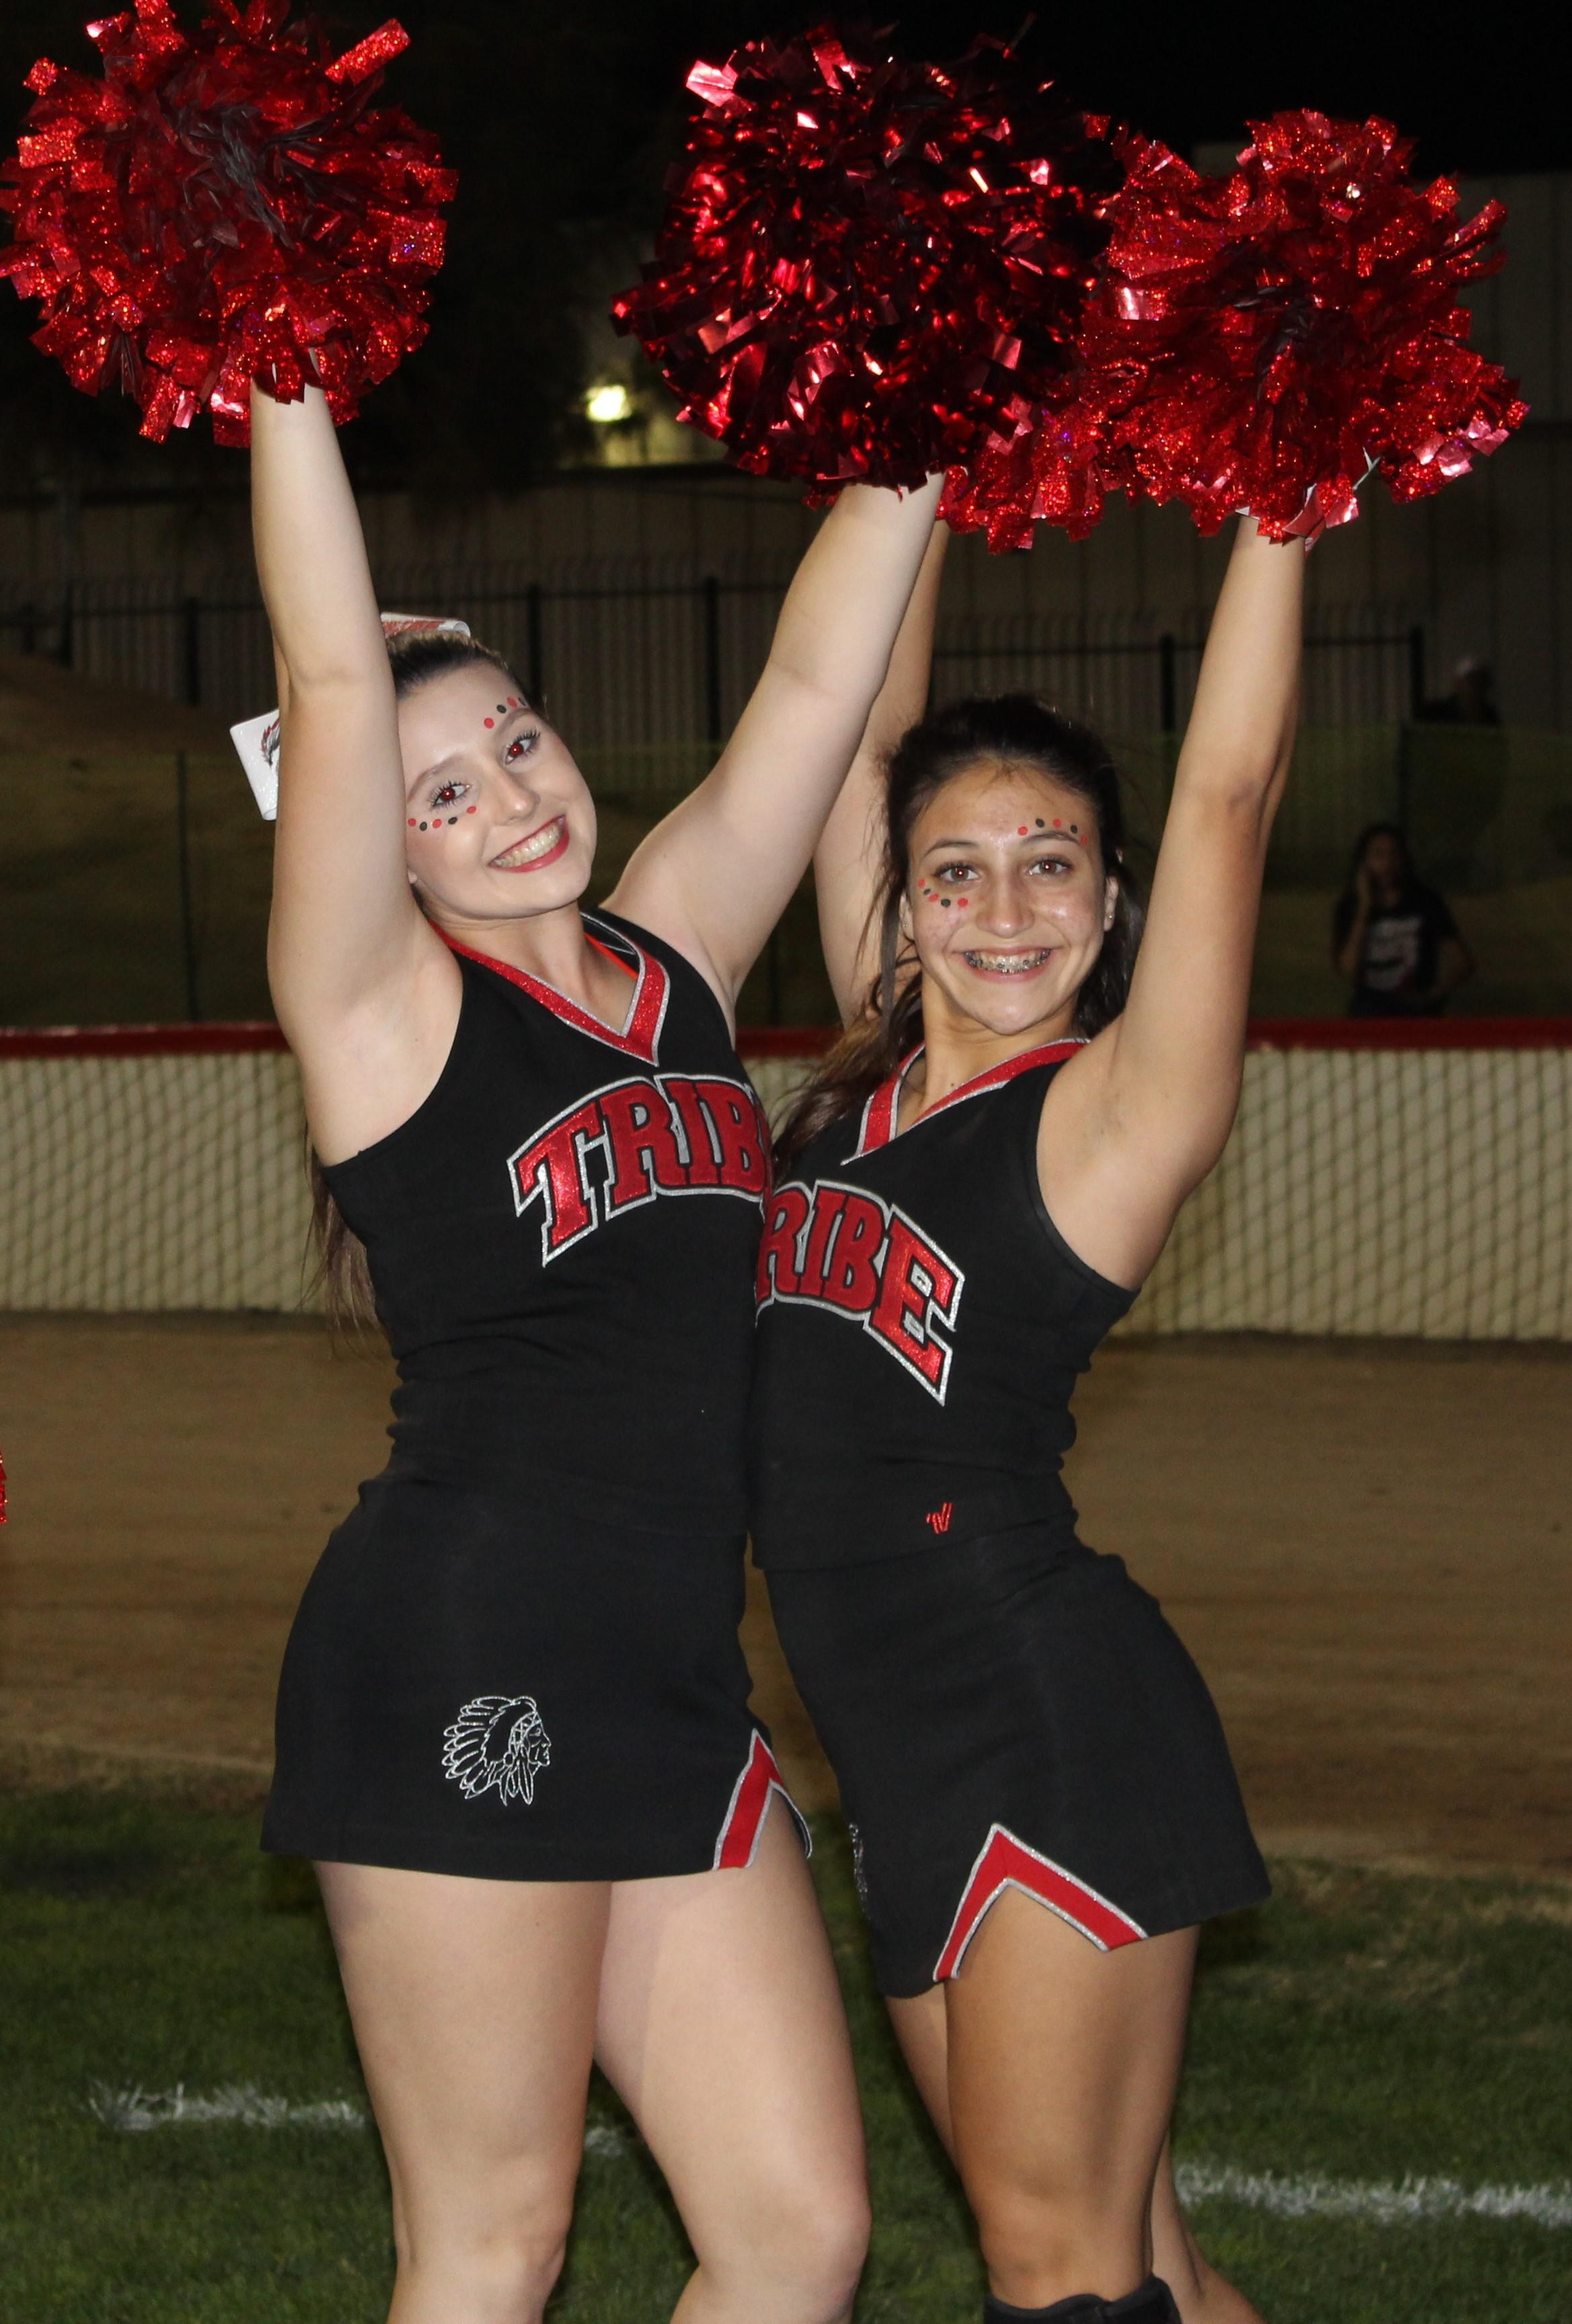 Cheerleaders at playoff football game against Highland